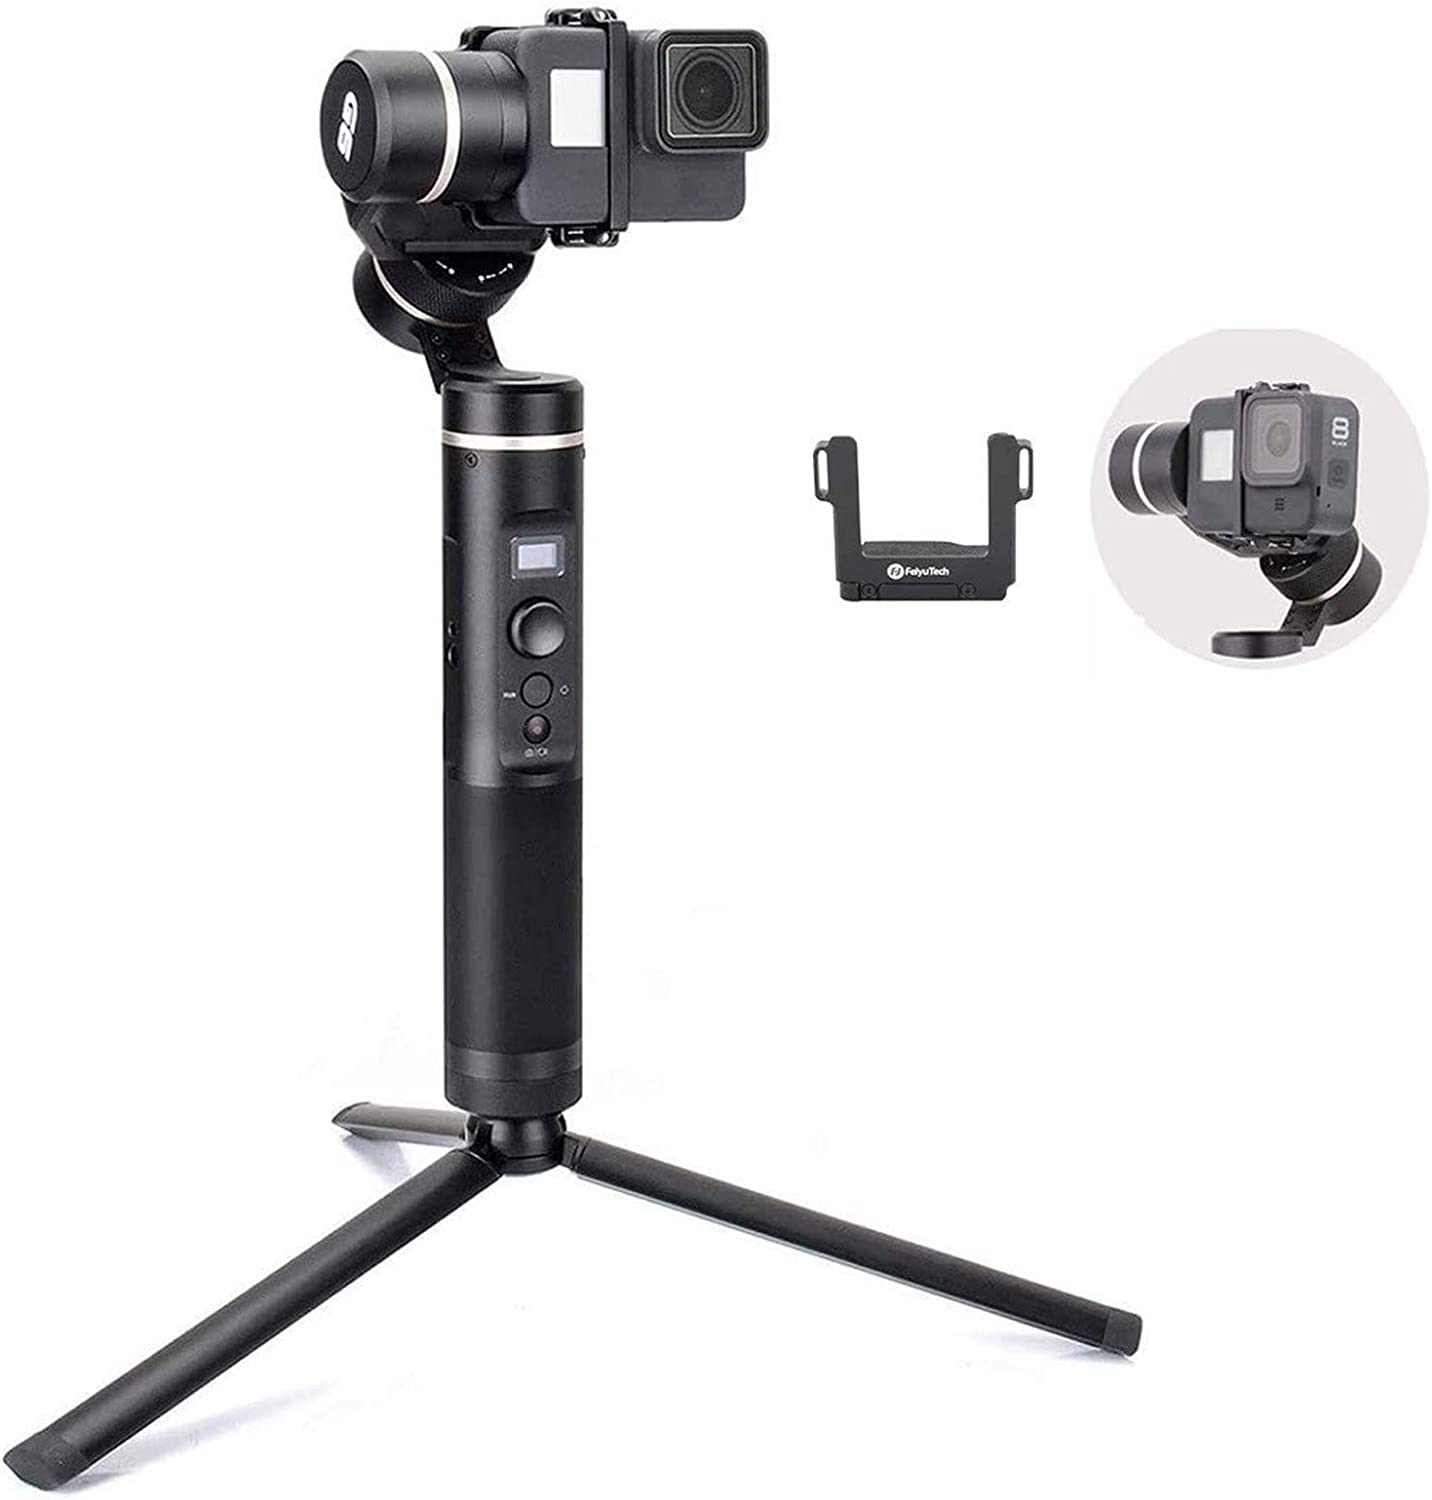 FeiyuTech FY Feiyu G6 3-Axis Splash Proof Handheld Gimbal Updated Version of G5